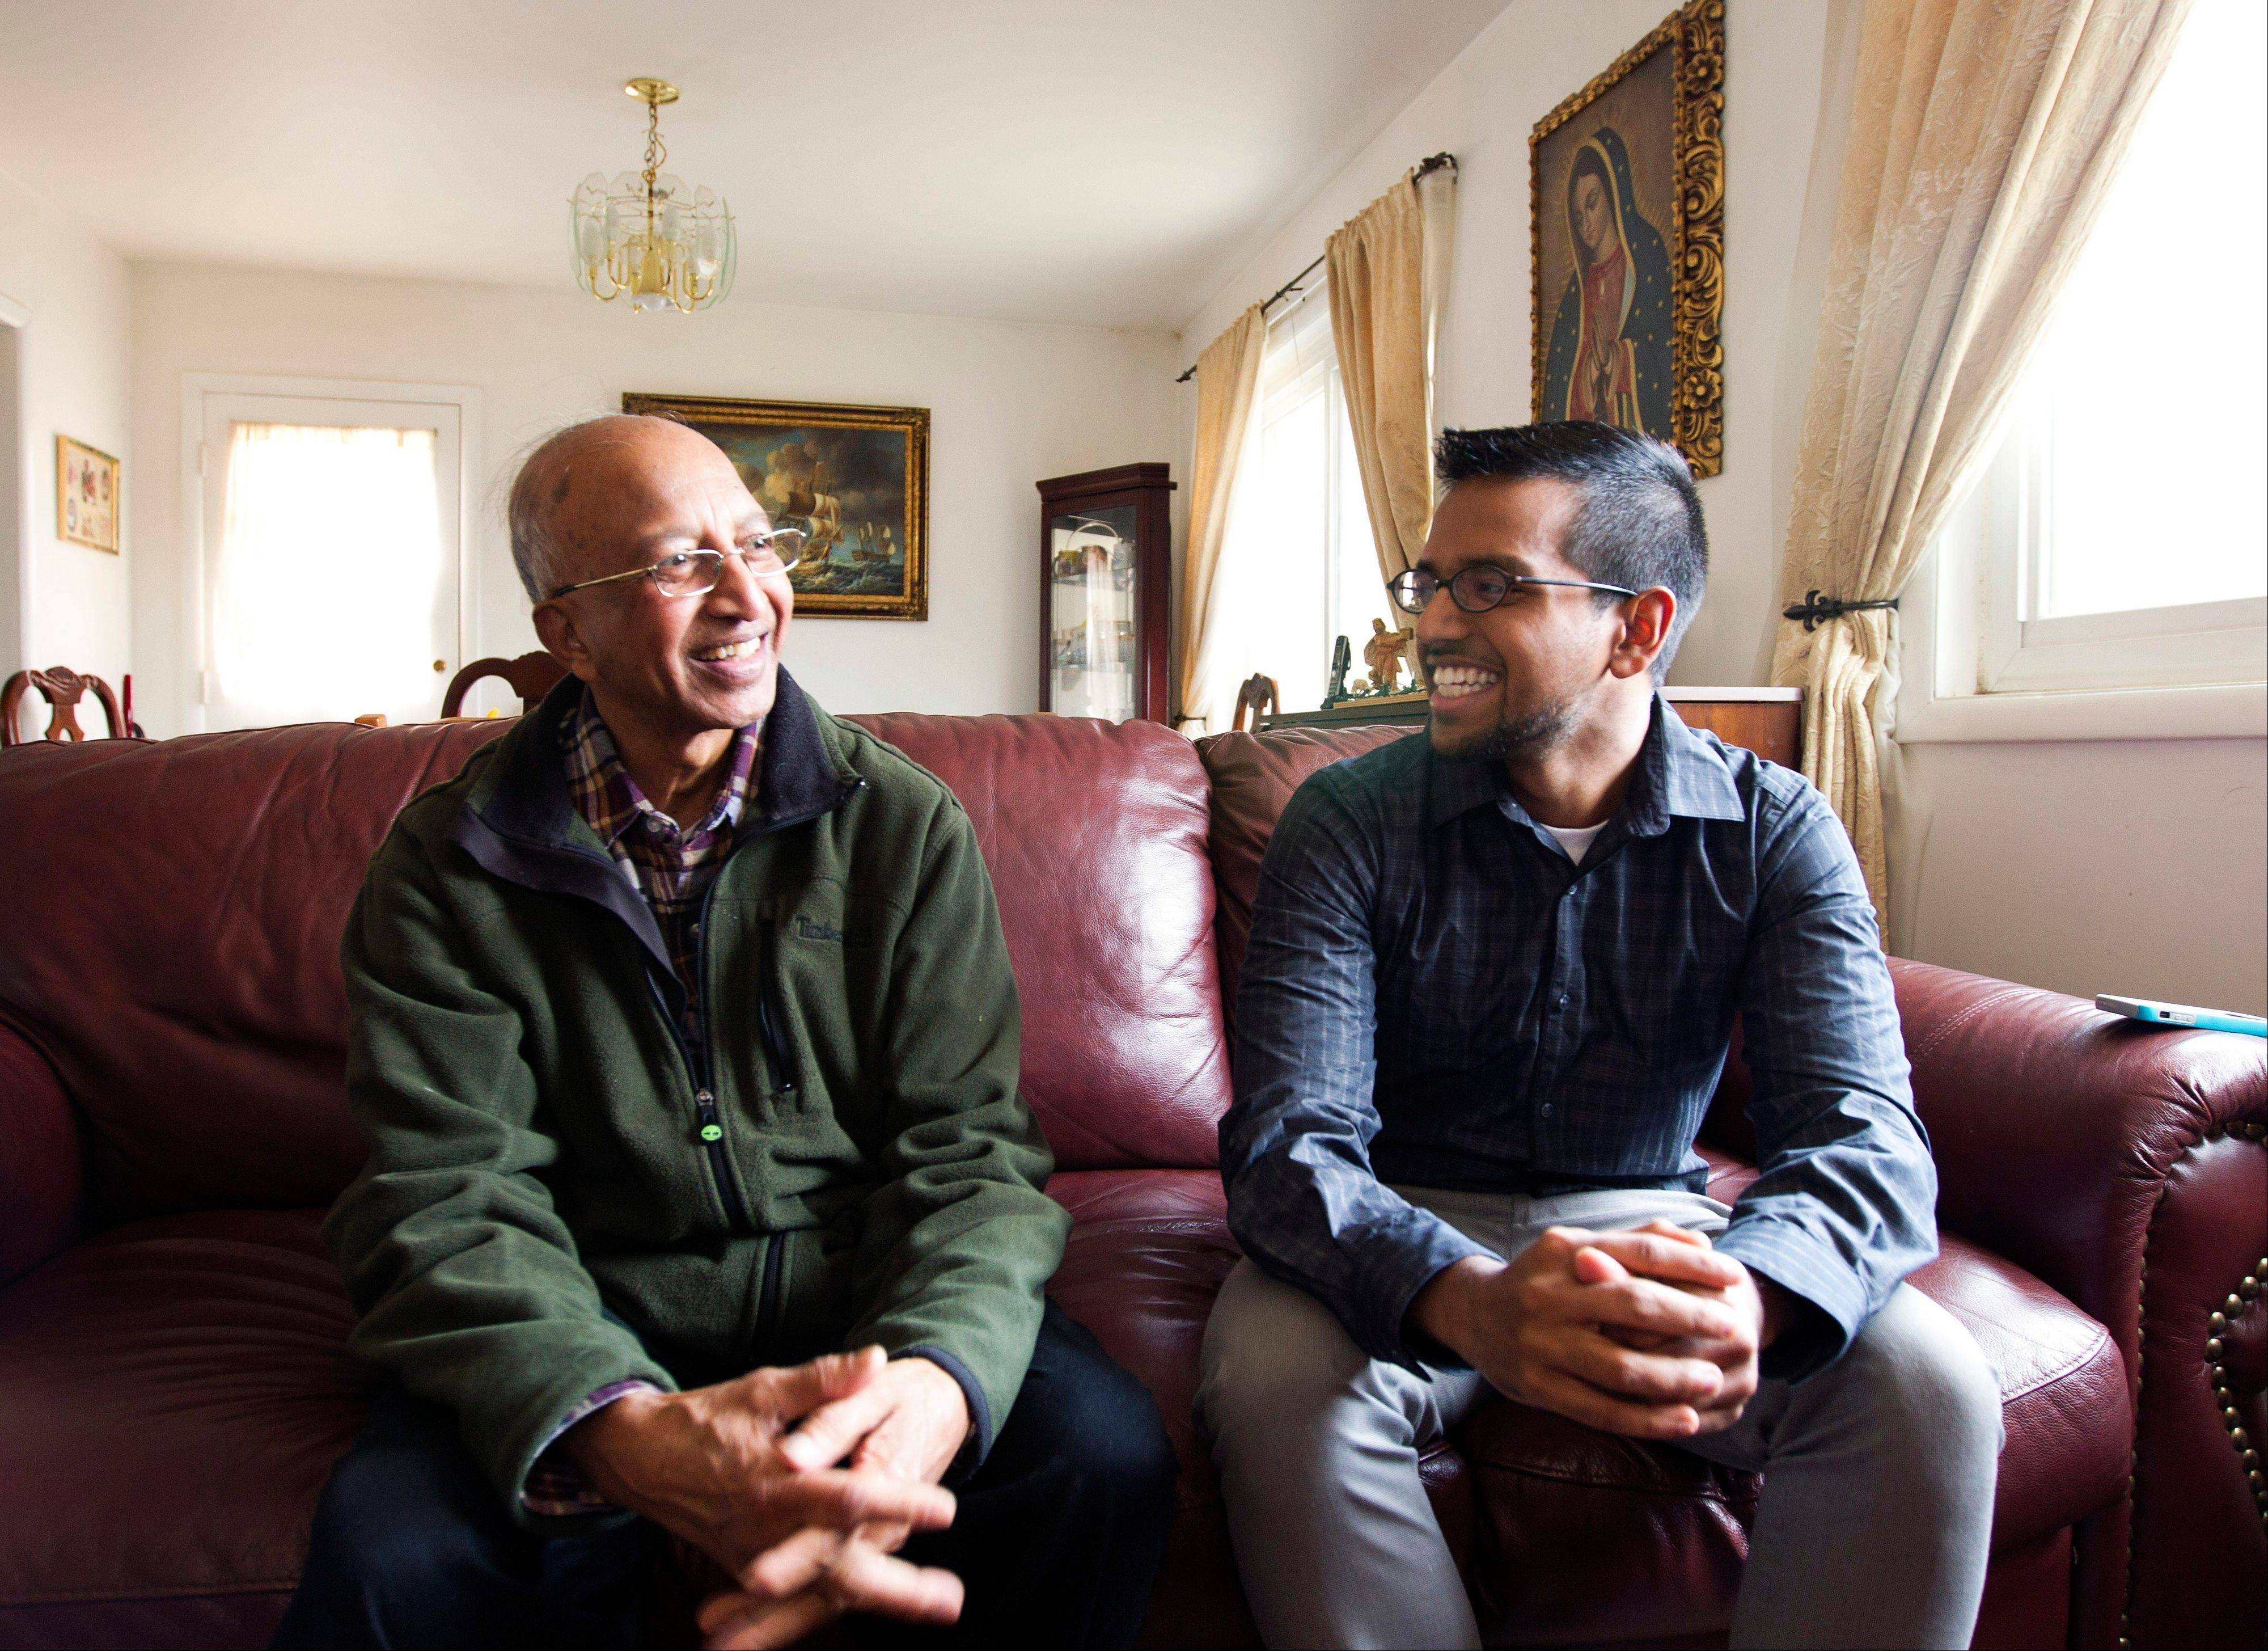 Yves Gomes, a student at the University of Maryland, who's parents were deported, right, talks Friday to his great uncle Henry Gomes, in his great uncle's house where he lives, in Silver Spring, Md.,